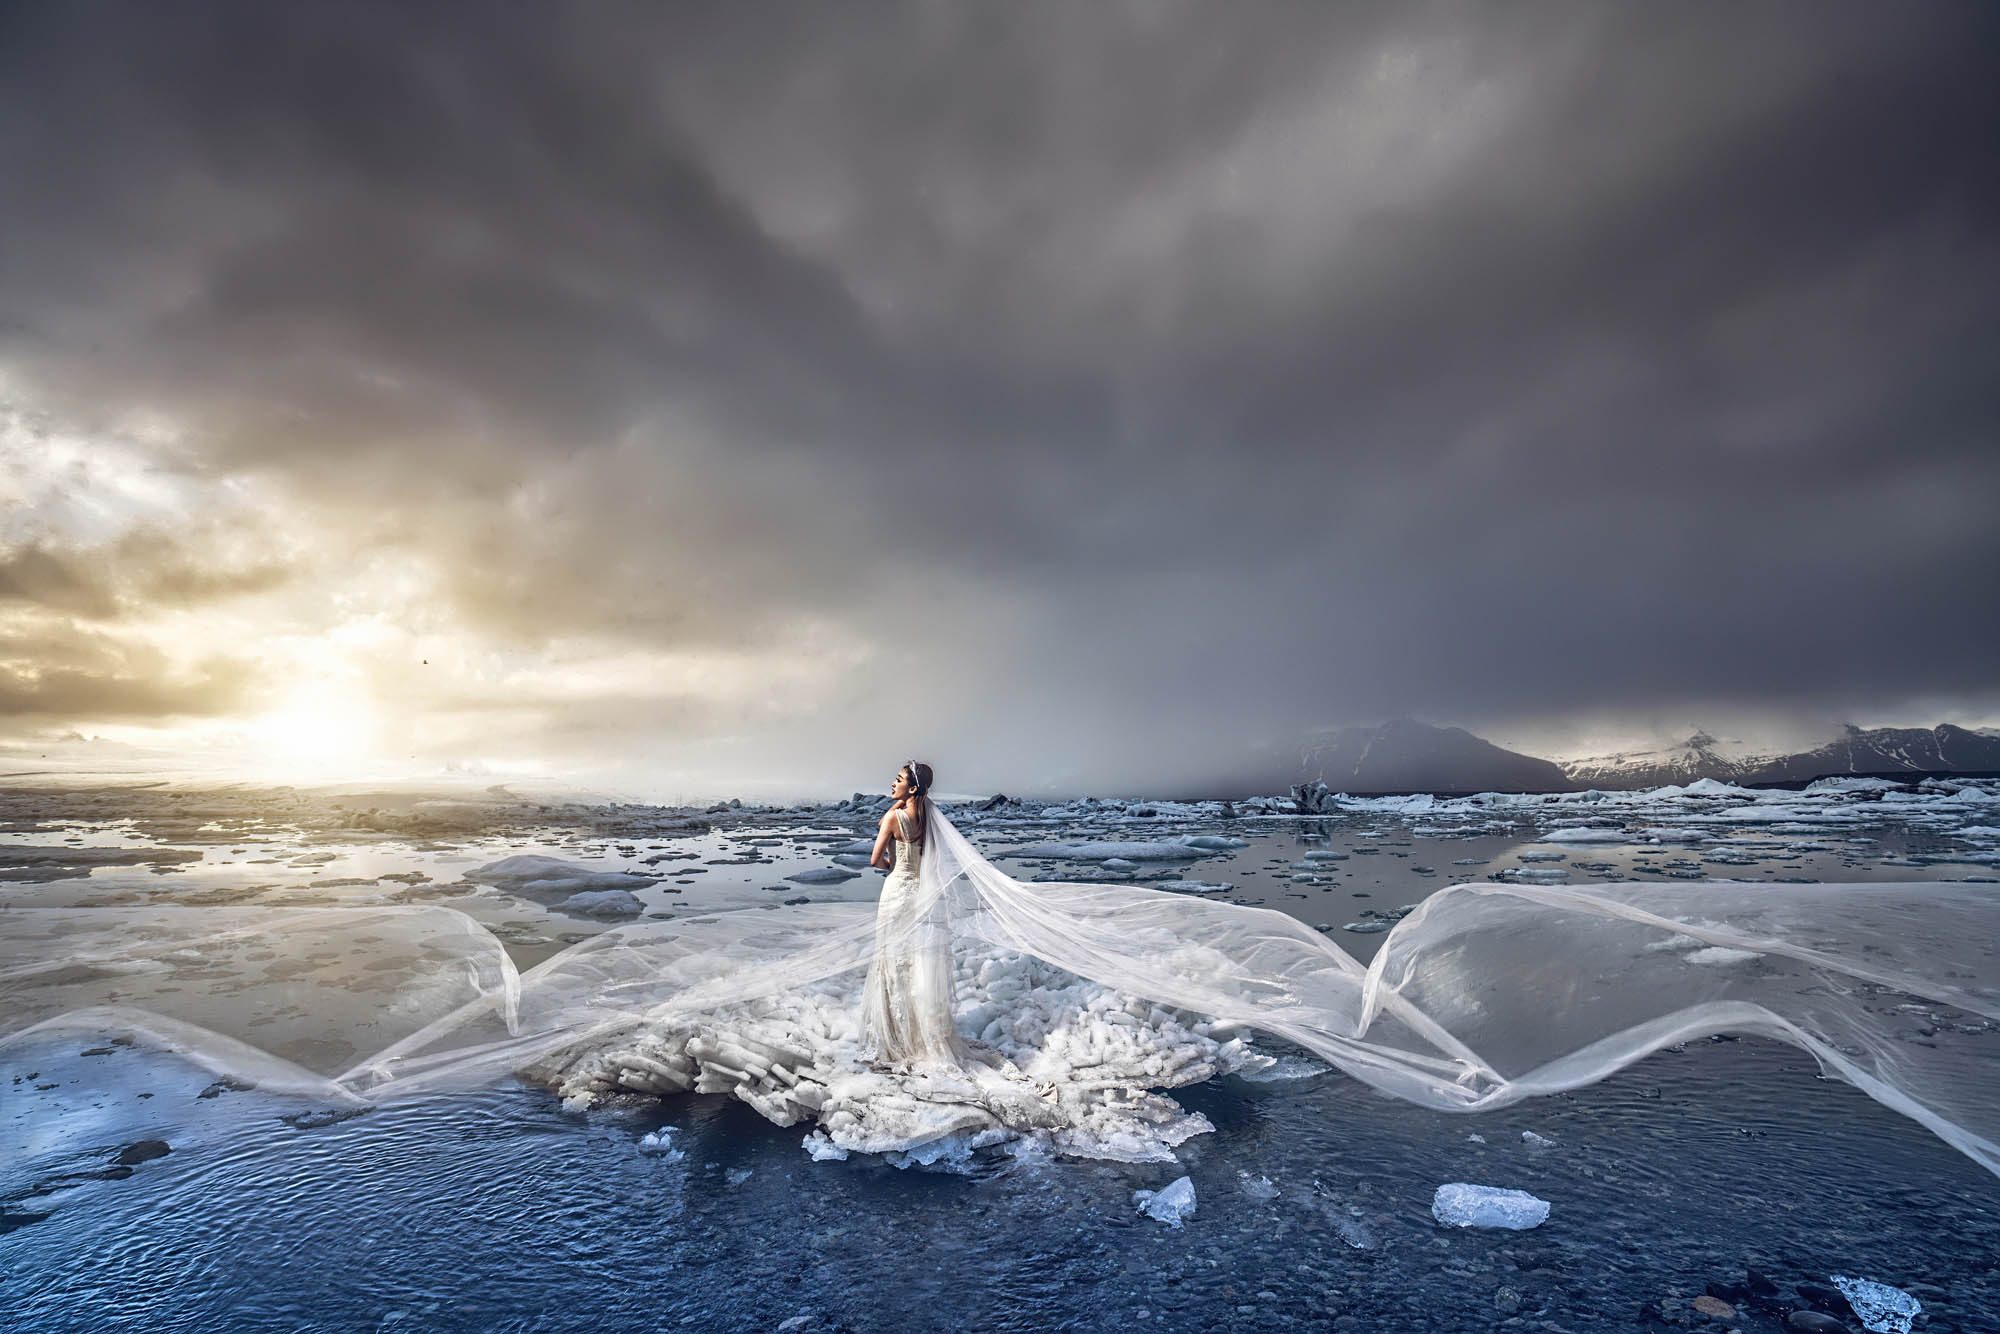 Dramatic bridal portrait with flowing veil by ice lake, by CM Leung